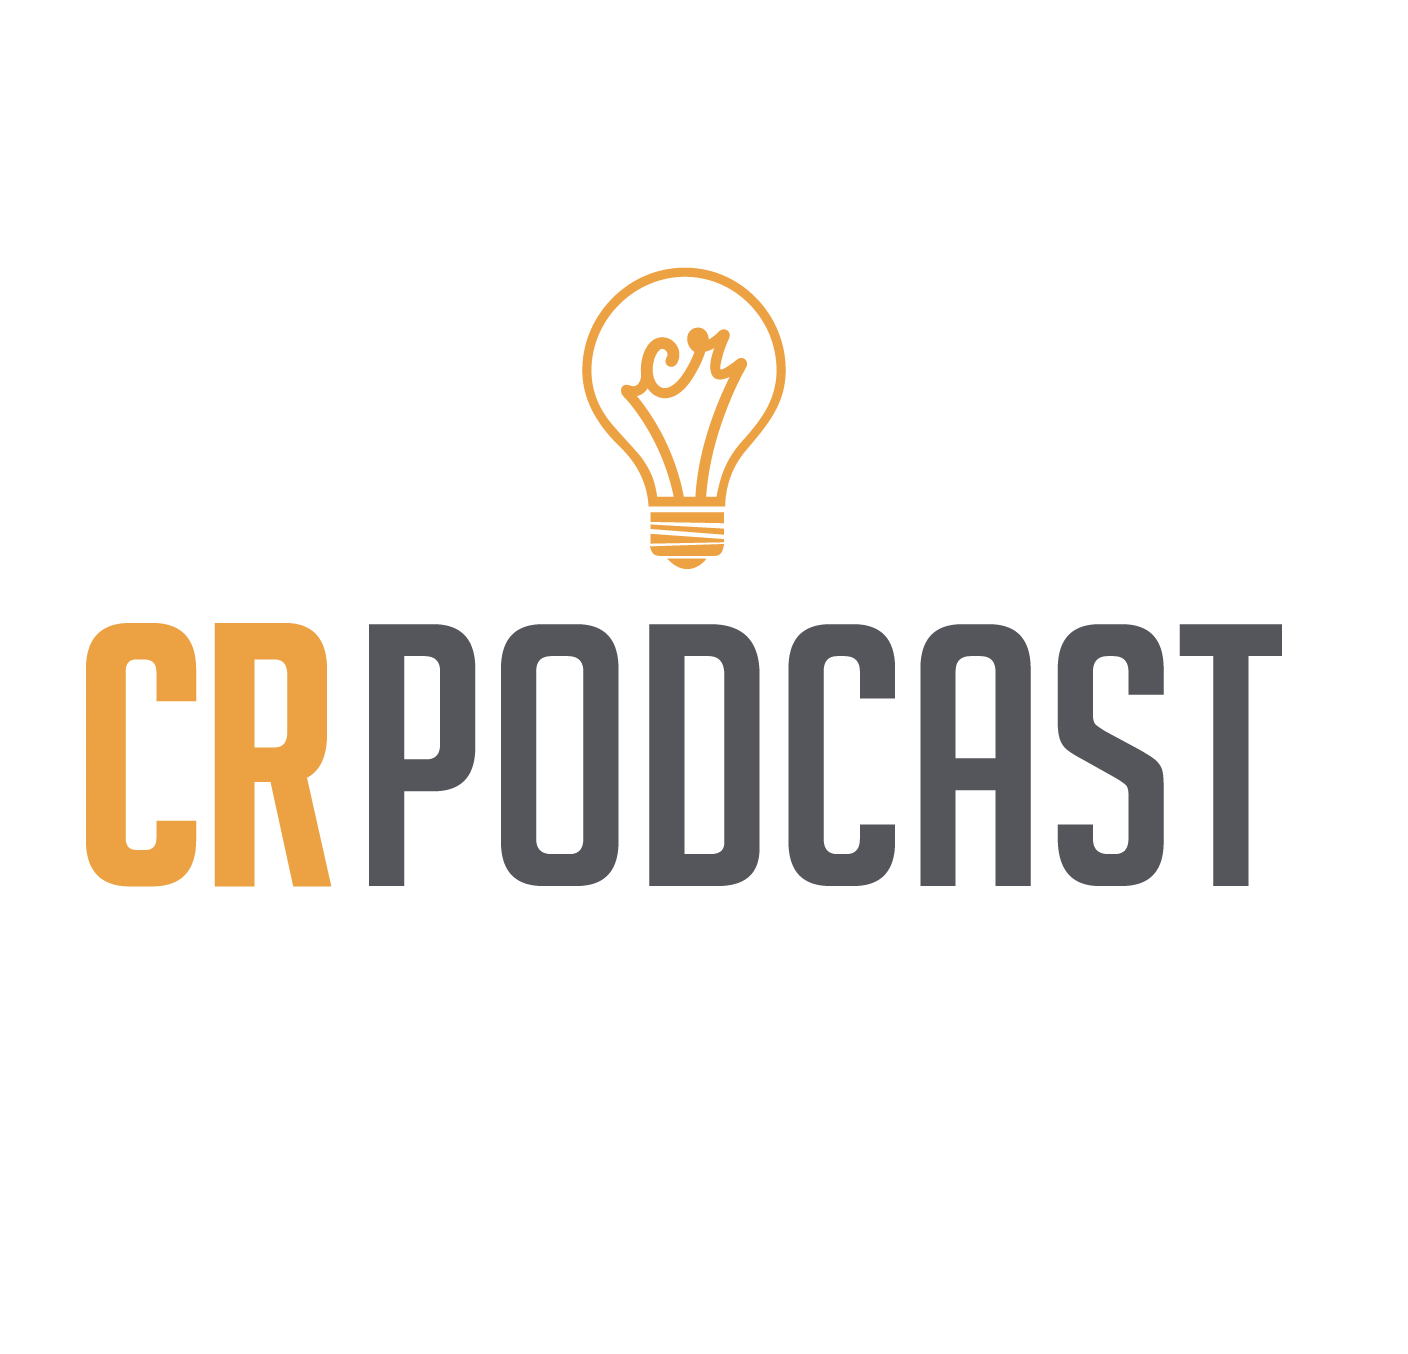 Episode 1 - Best Practices for Recruiting & Hiring New Employees show art